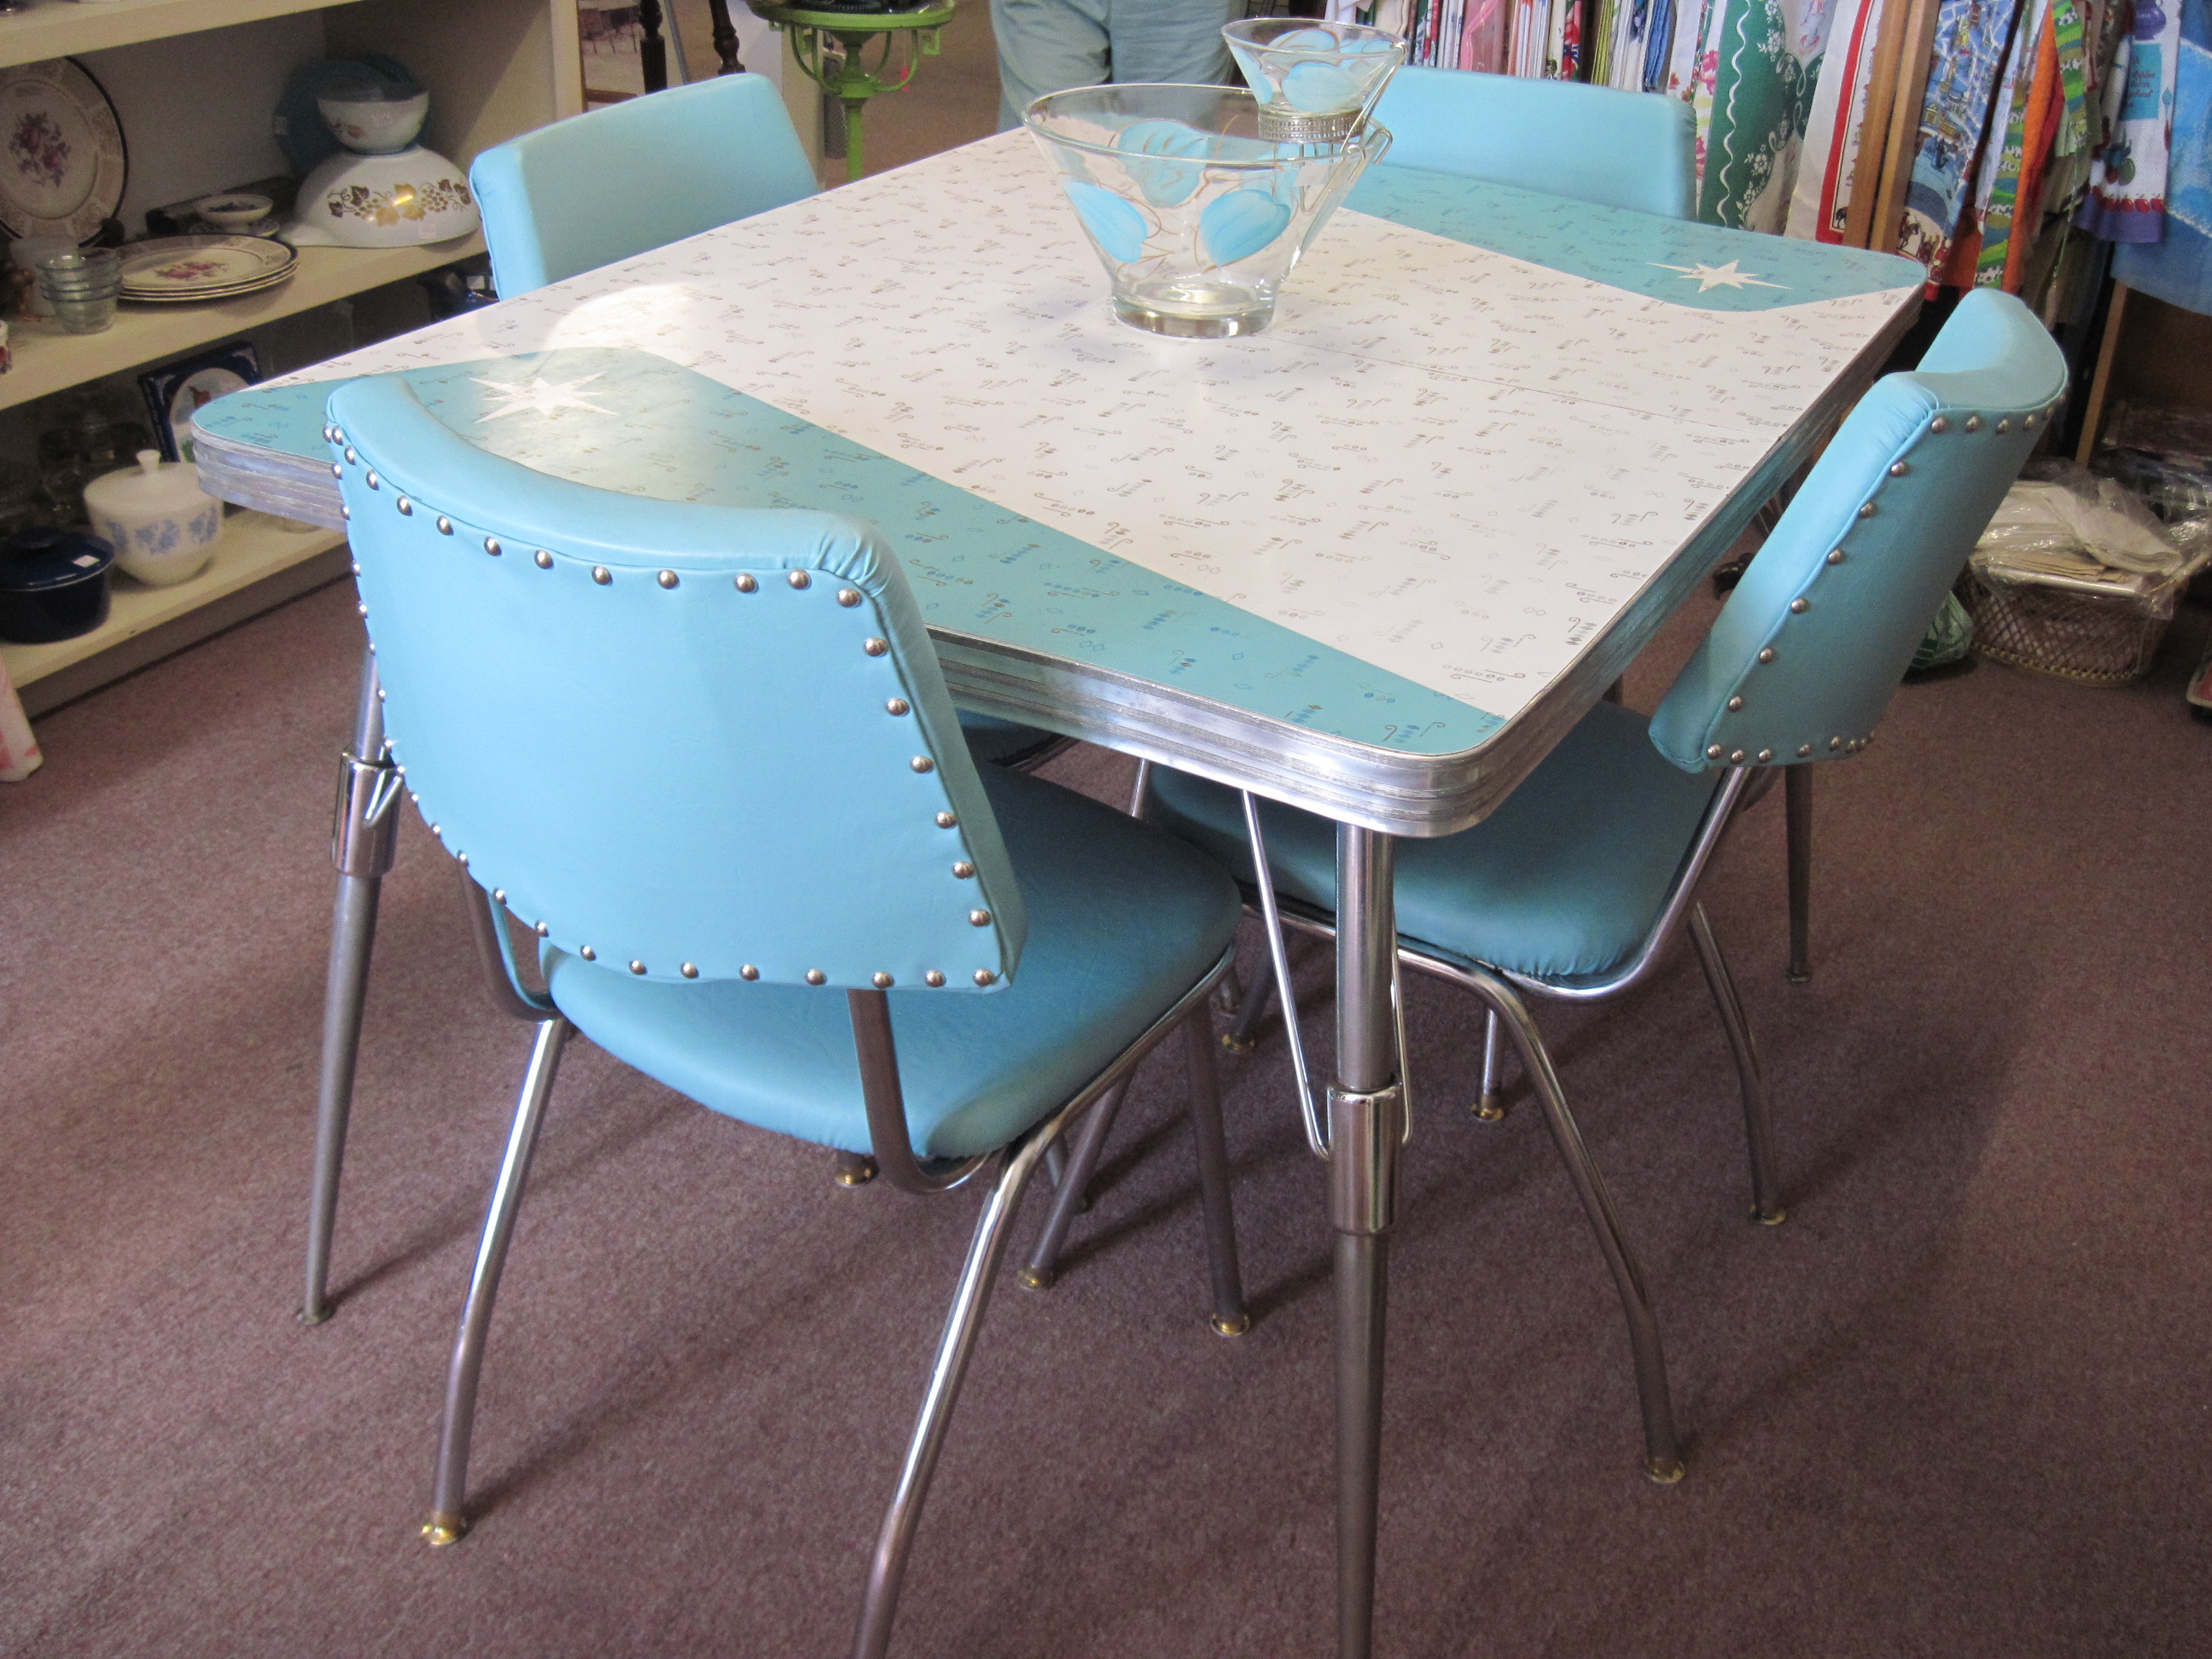 Formica table fabfindsblog for Kitchen dinette sets for sale